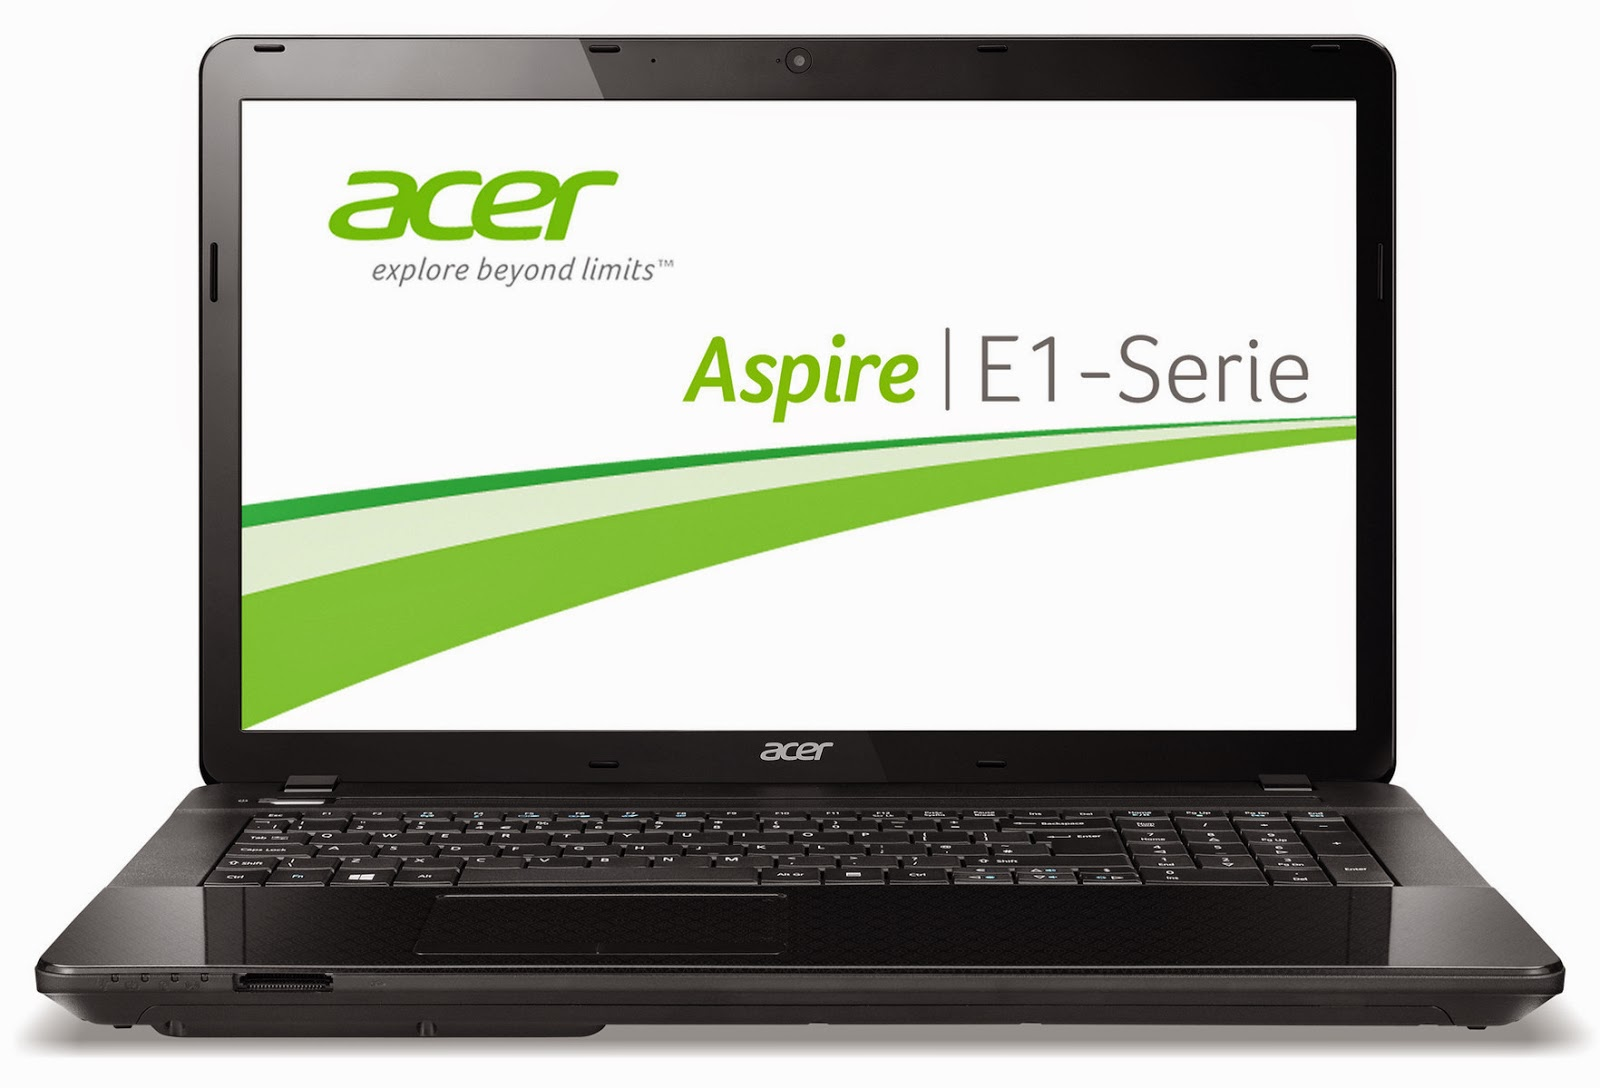 ACER ASPIRE E1-771 INTEL SATA AHCI DRIVERS FOR WINDOWS 10